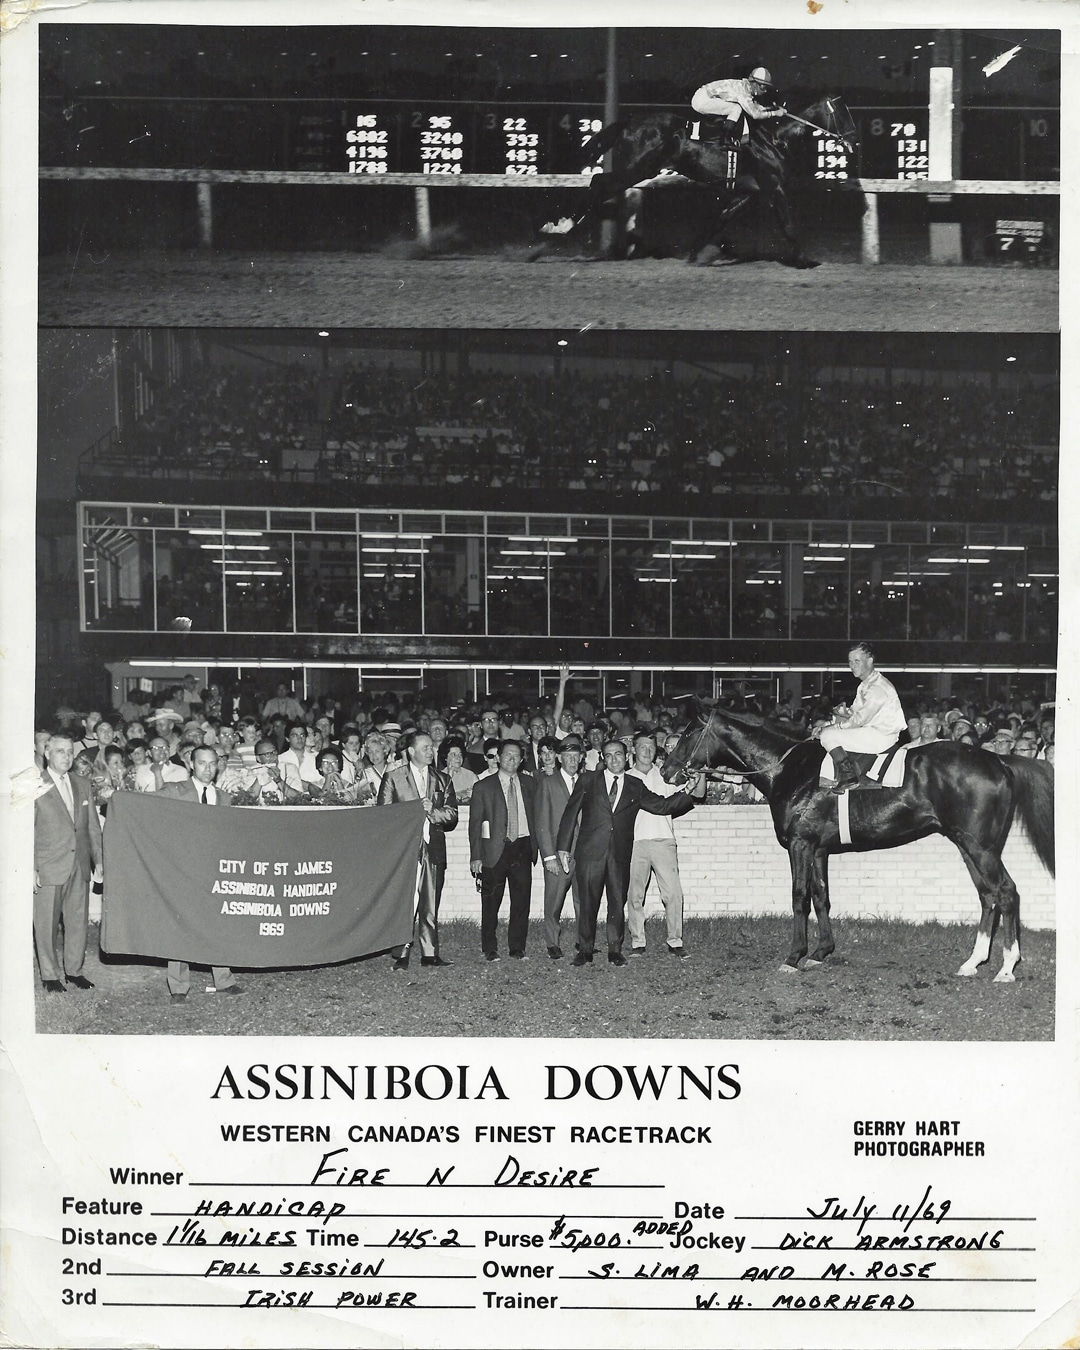 Fire N Desire wins the St. James-Assiniboia Handicap. July 11, 1969.